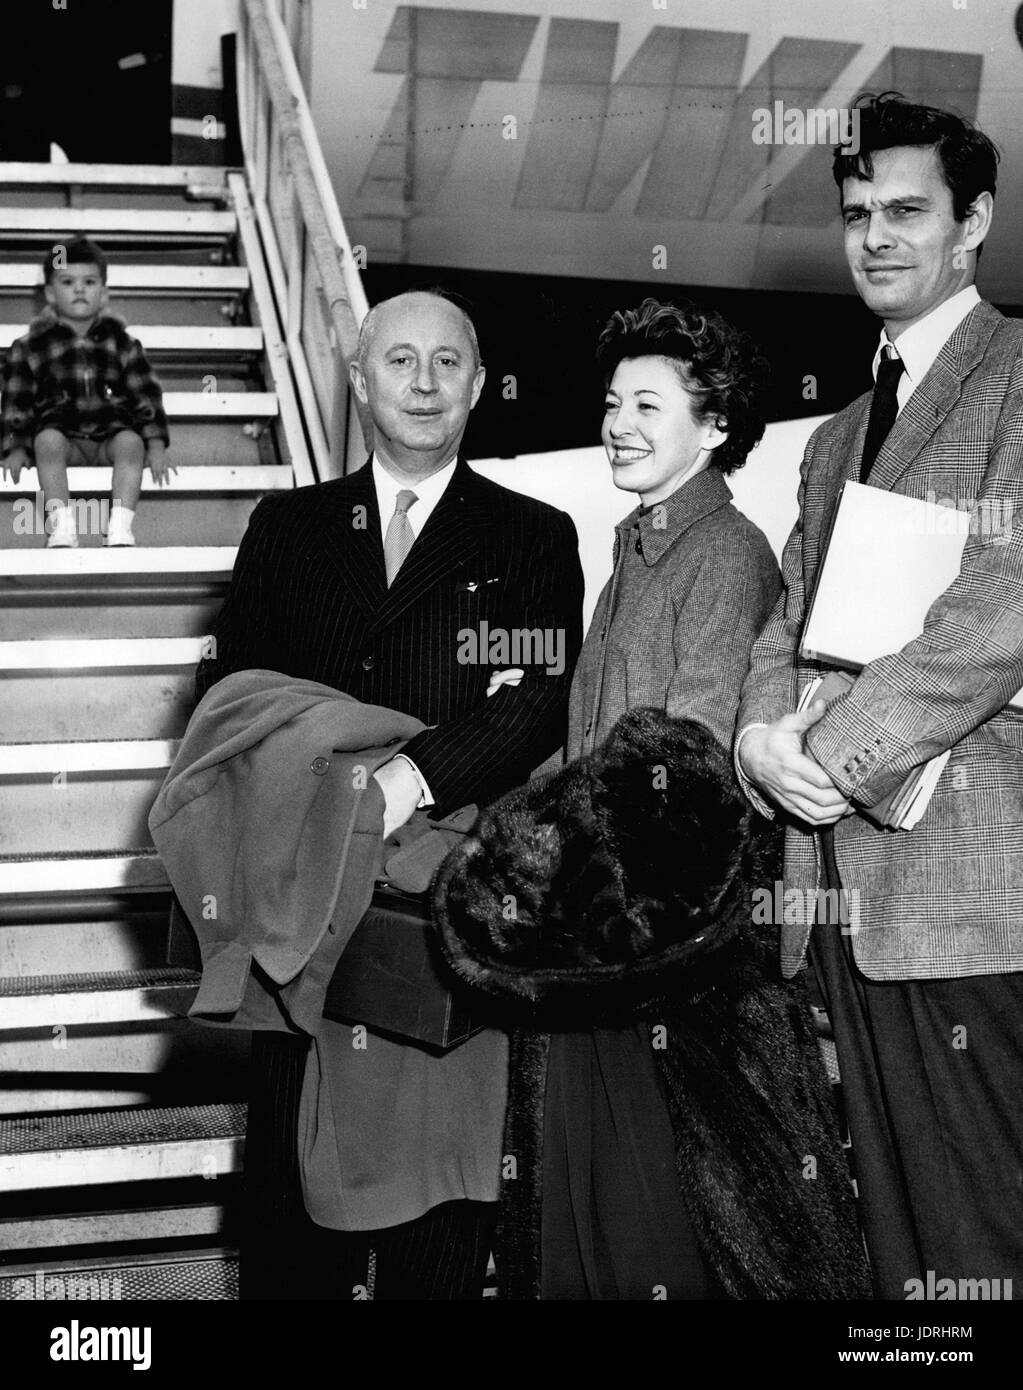 Feb. 24, 1962 - Idlewind Airport, N.Y., May 5 Actor Louis Jourdan, (right) his wife Quique, and fashion designer Stock Photo